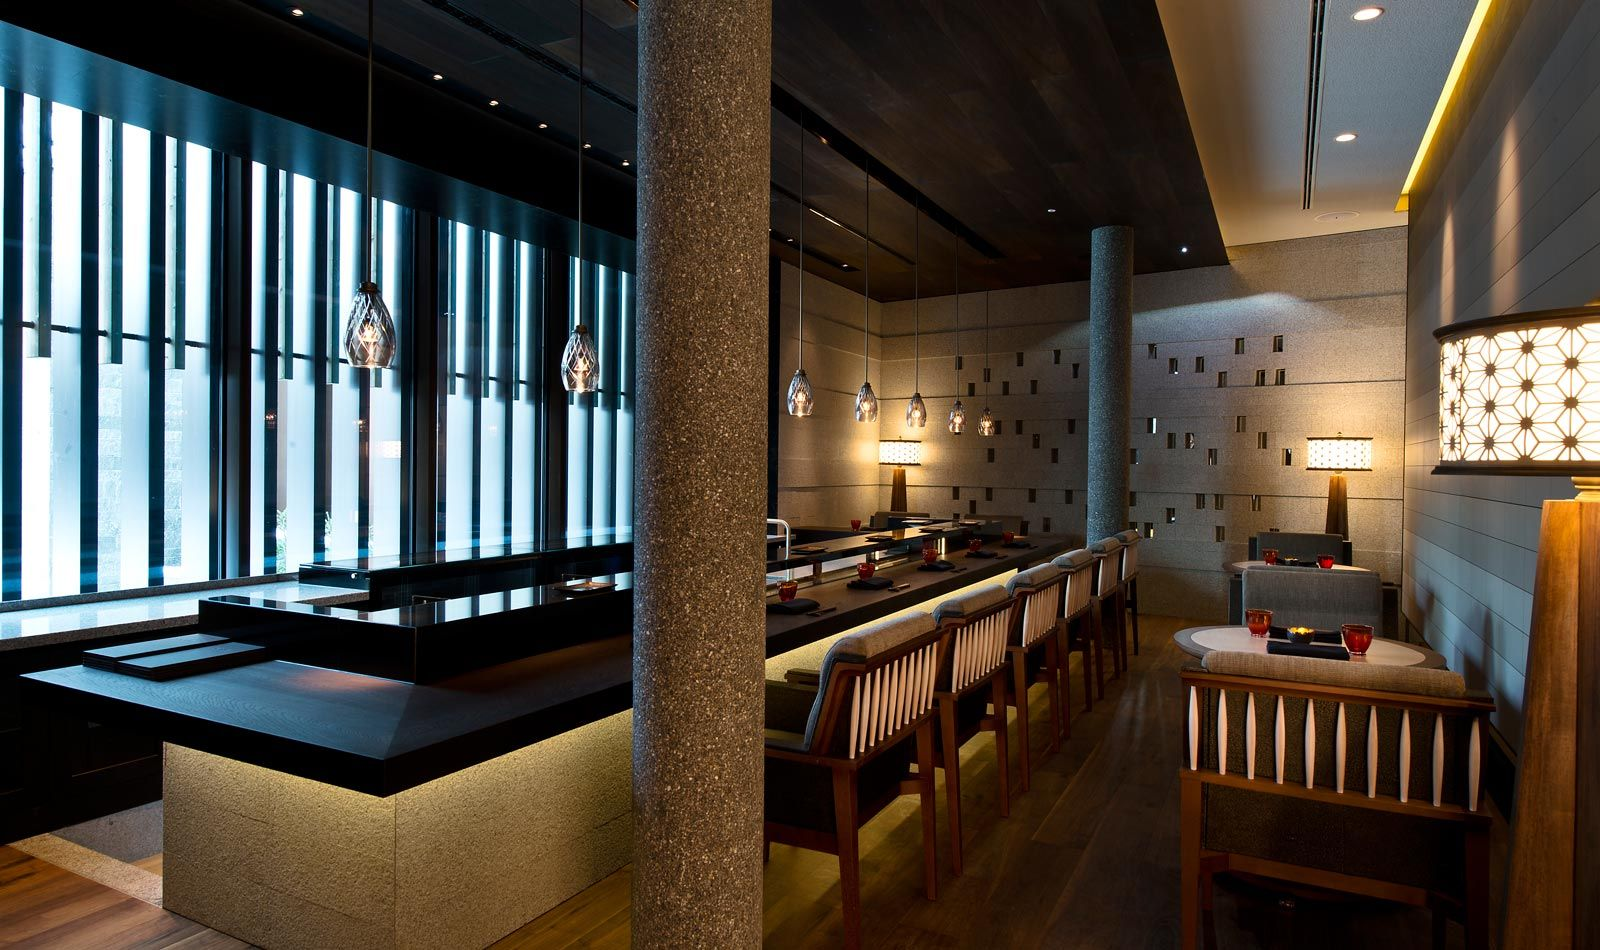 The Japanese Restaurant The Chedi Andermatt Luxury Hotel Switzerland Ghm Hotels Space Restaurants Andermatt Hotel